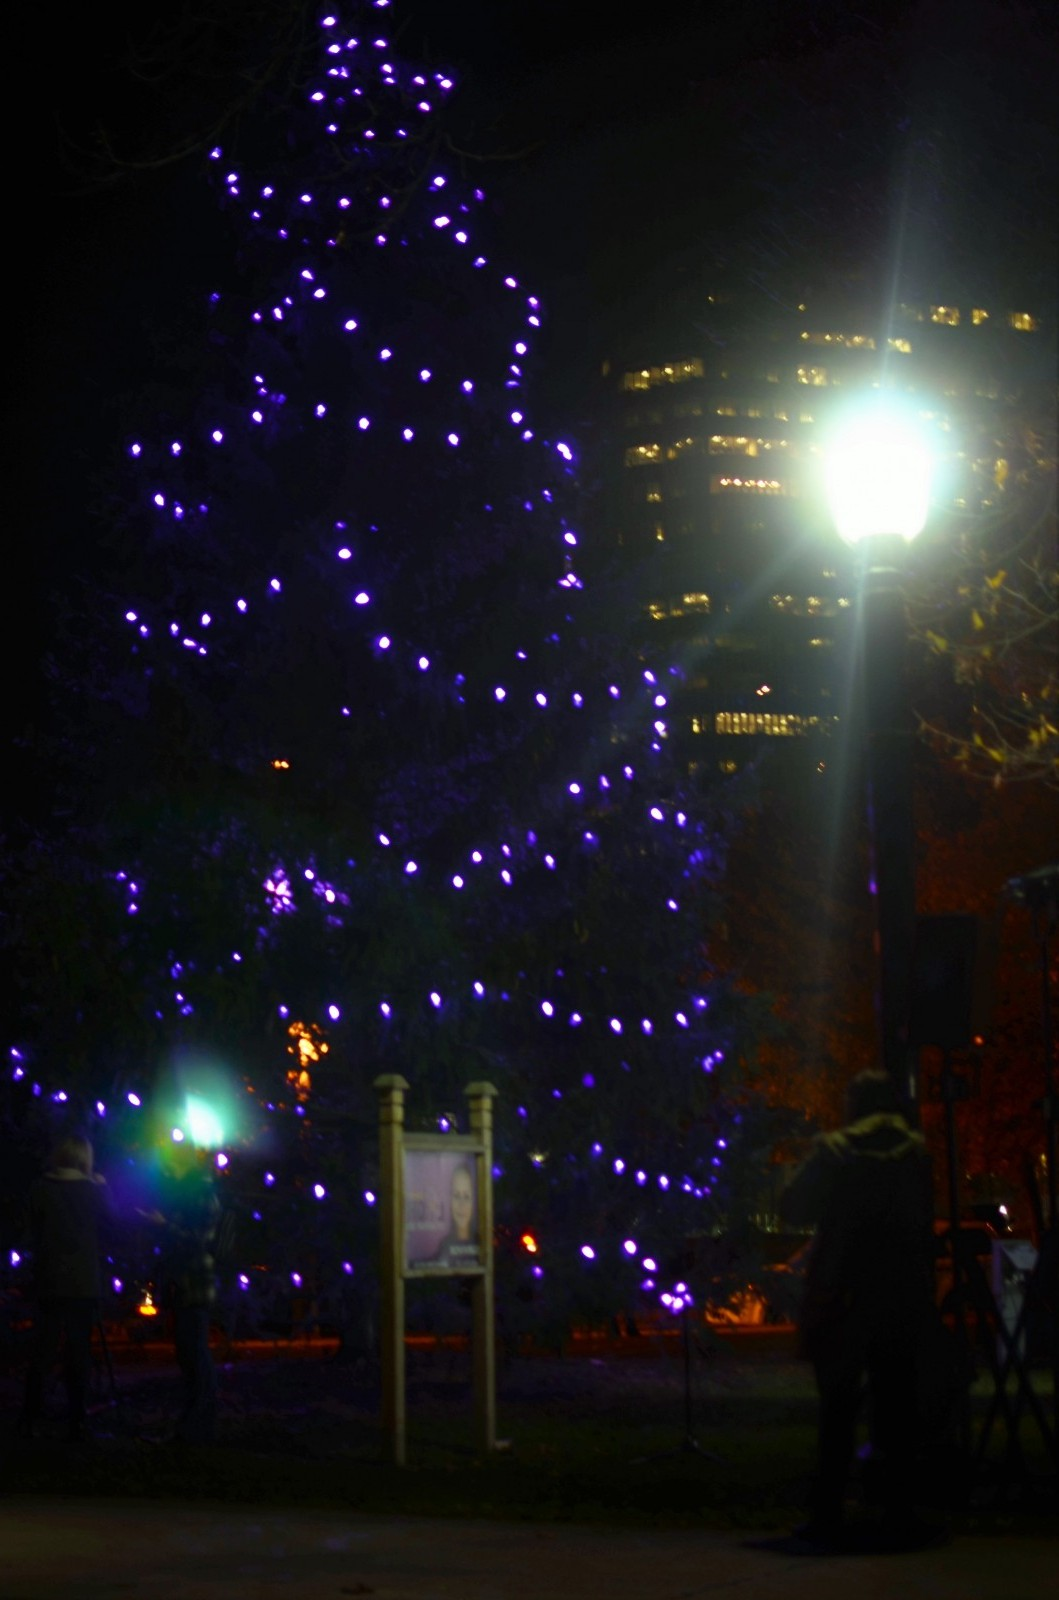 Londoners showed their support for abused women at the lighting of the 'purple tree' in Victoria Park